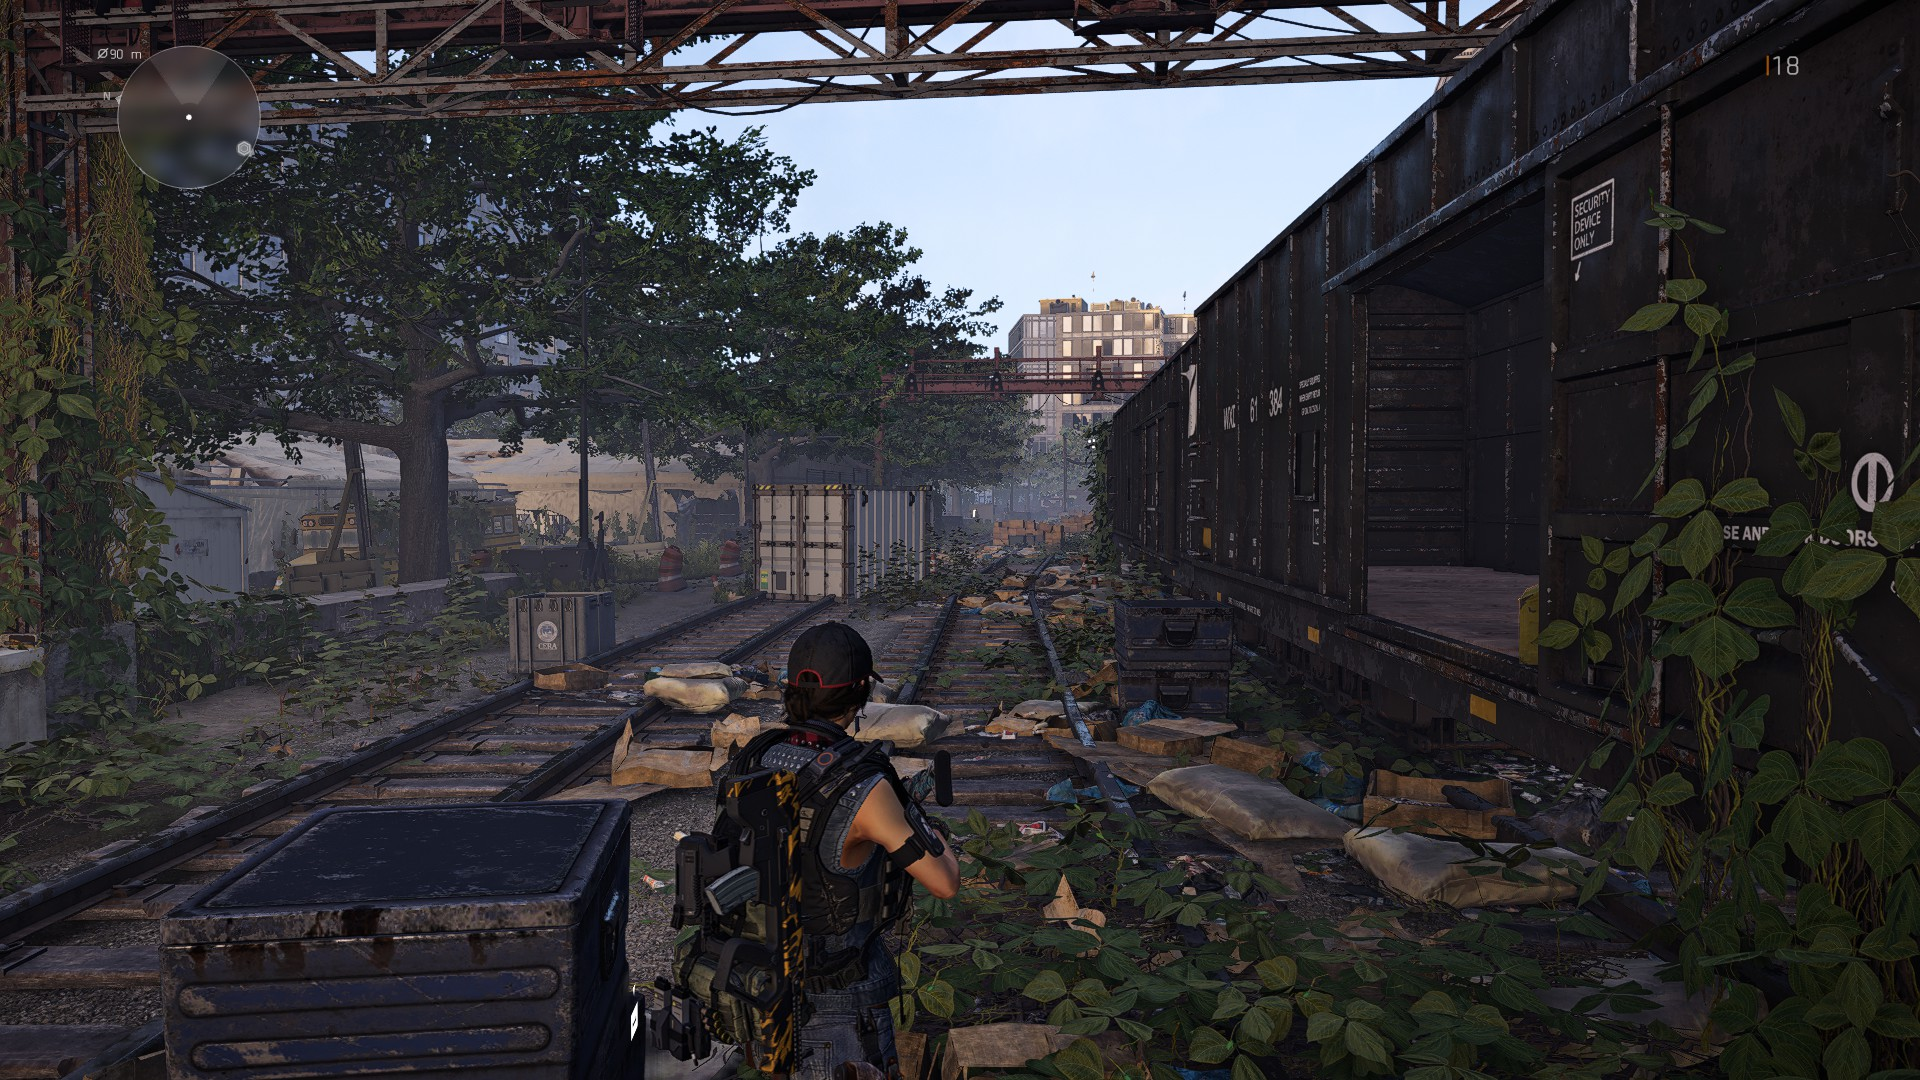 Tom Clancy's The Division® 22019-5-13-16-16-26.jpg